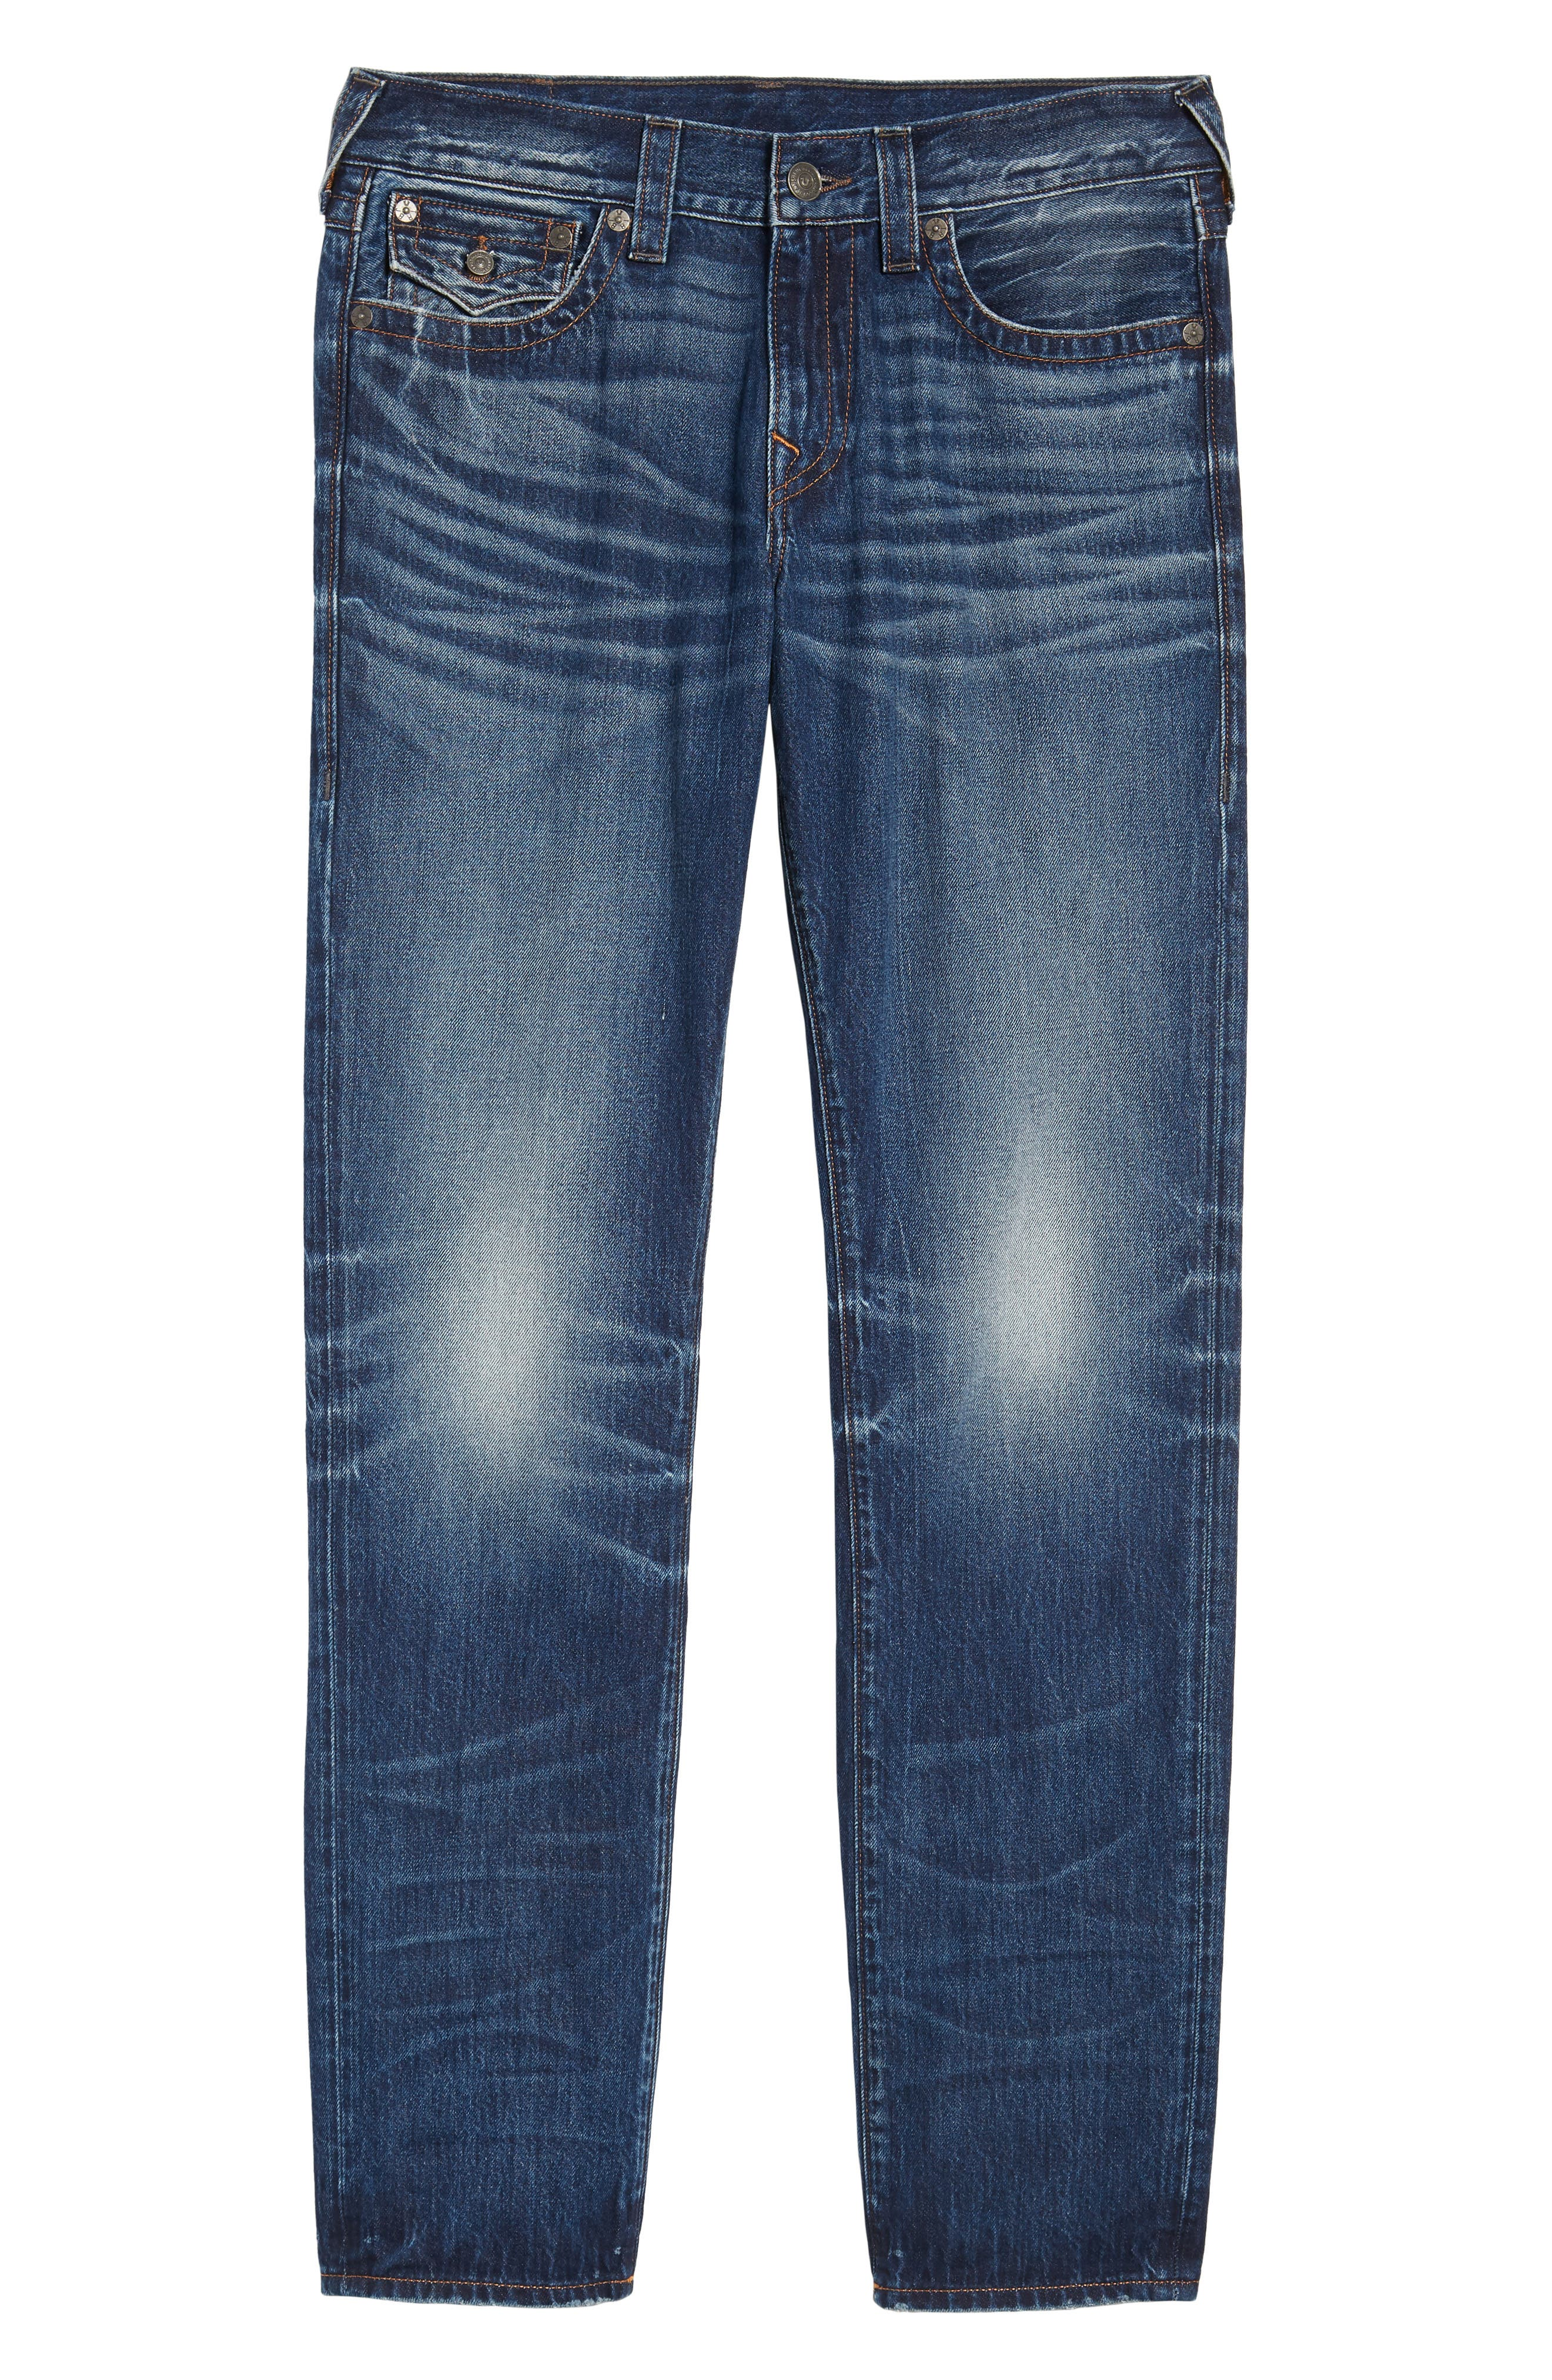 Geno Straight Leg Jeans,                             Alternate thumbnail 6, color,                             EQSD DARK AFTER HOURS